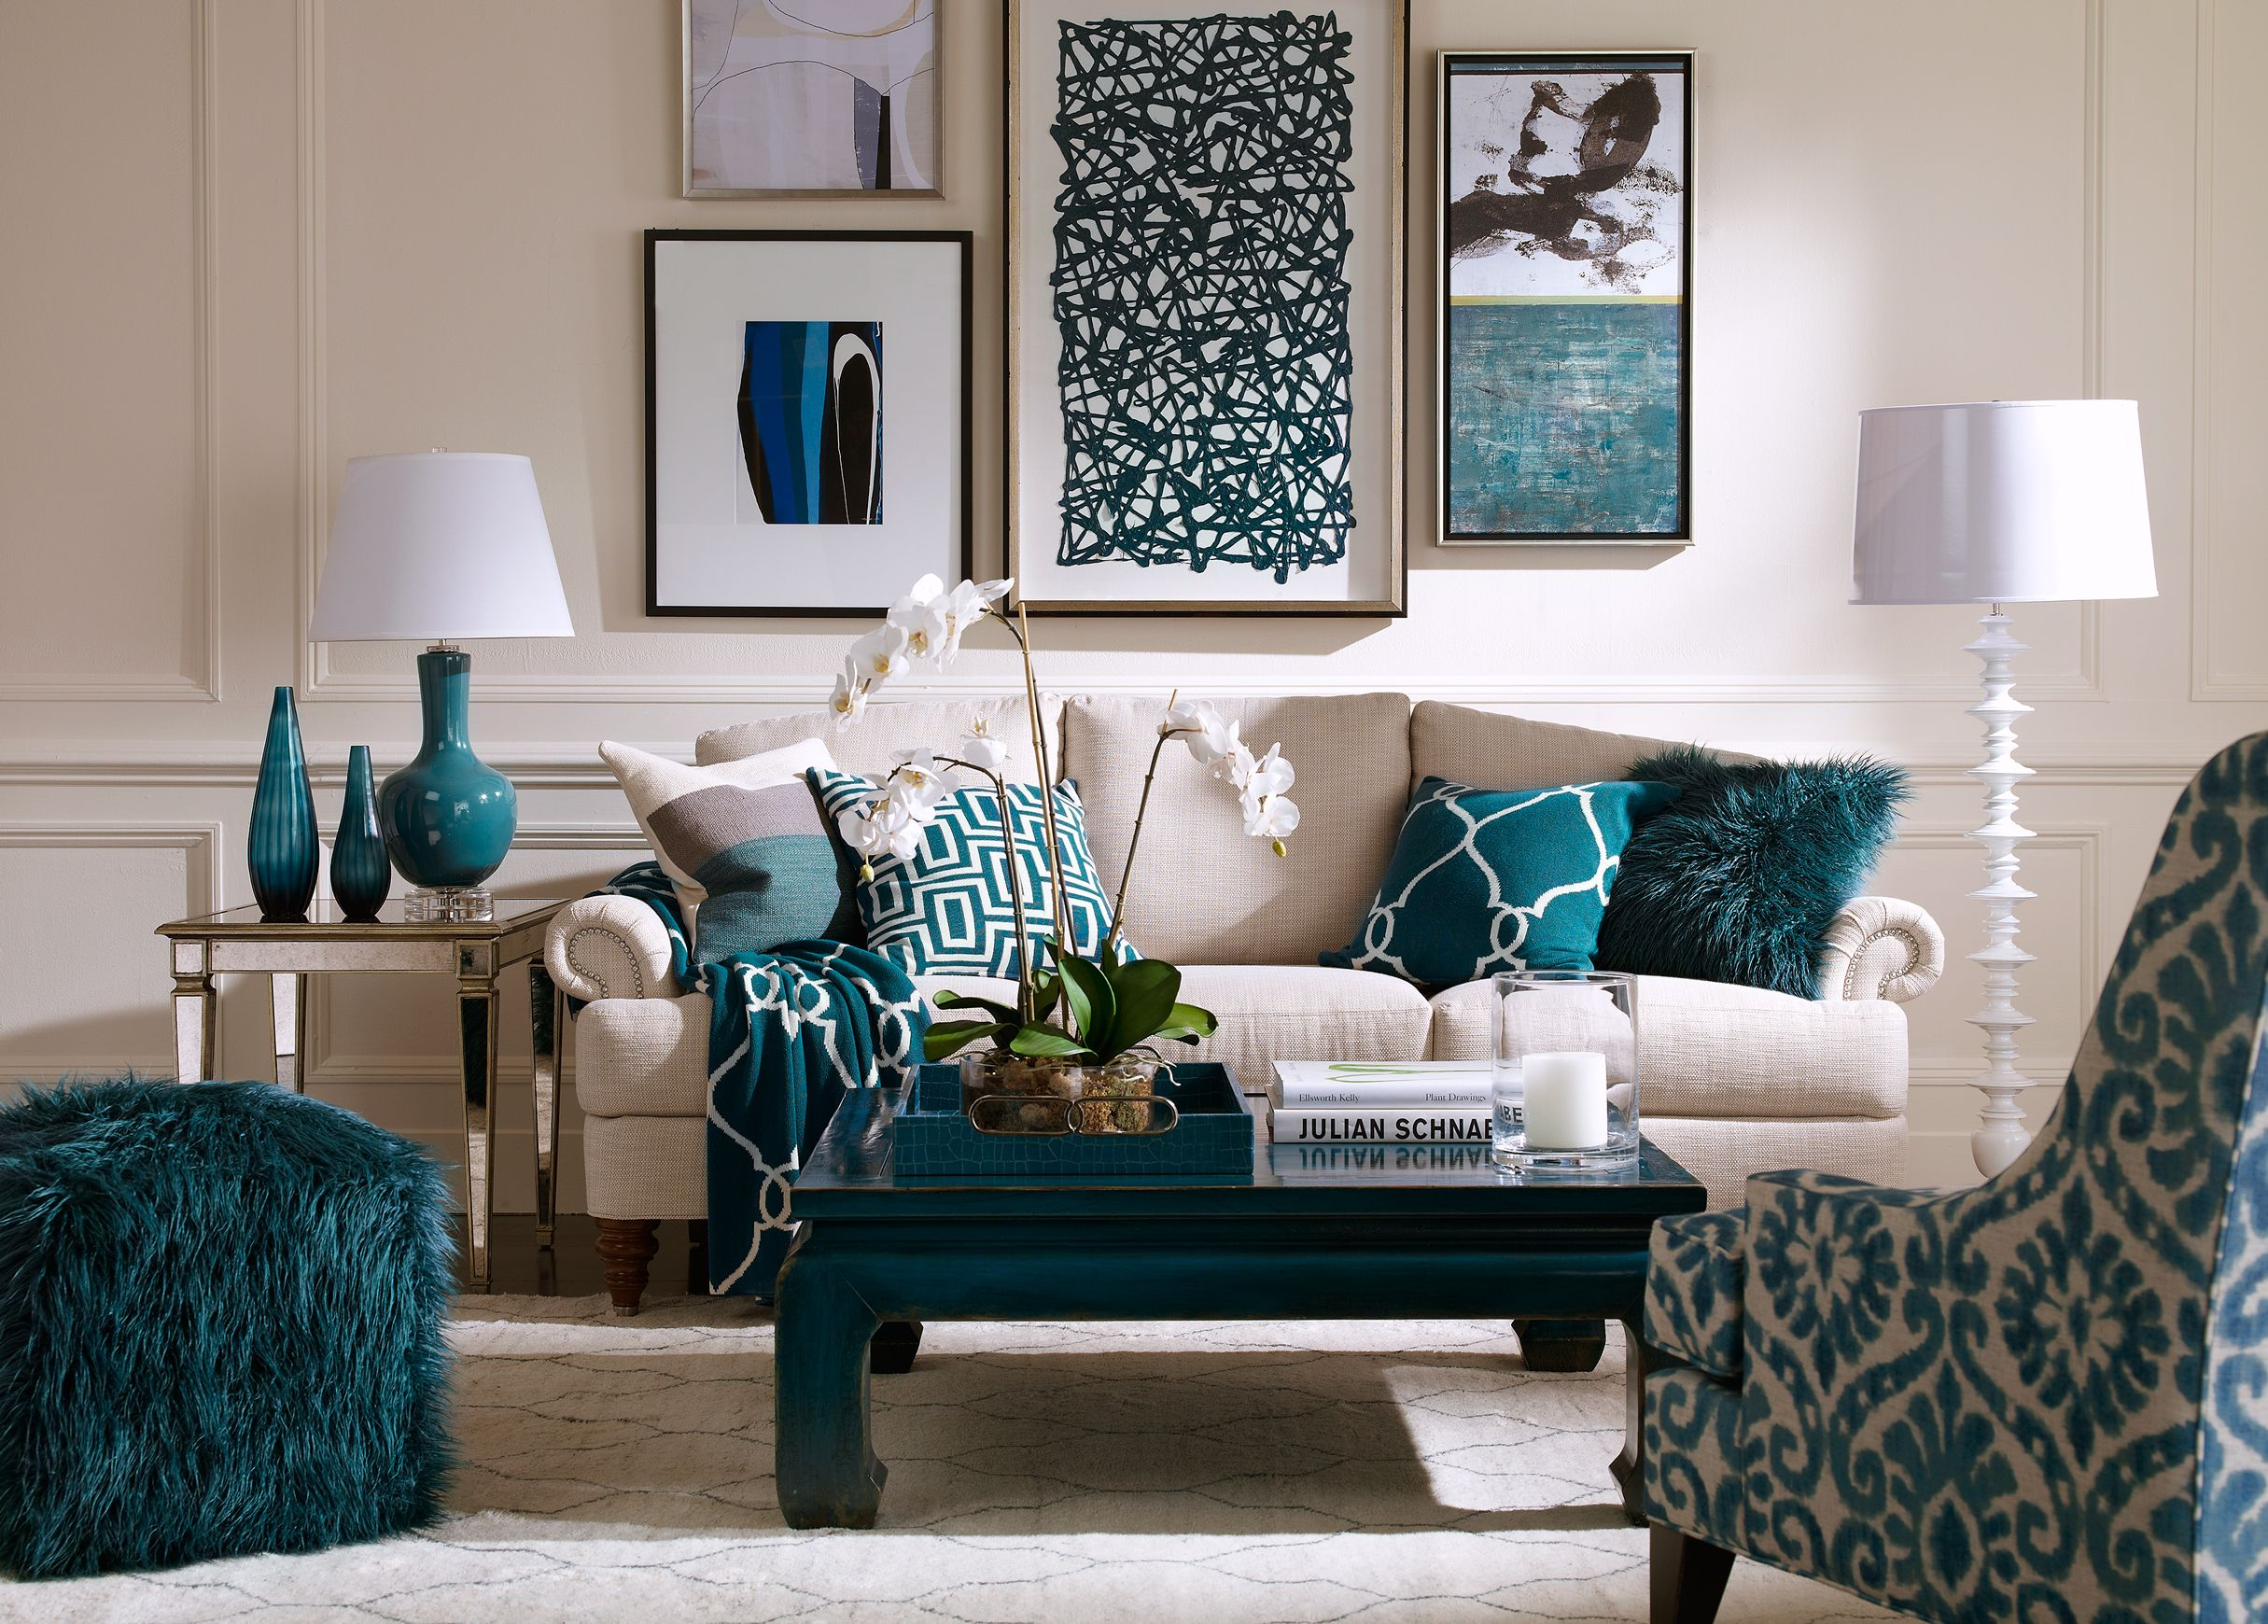 Delightful Turquoise Dining Room Ideas, Turquoise Rooms, Turquoise Living Room  Accessories, Using Turquoise In Decorating, Decorating With Turquoise  Accents, ...